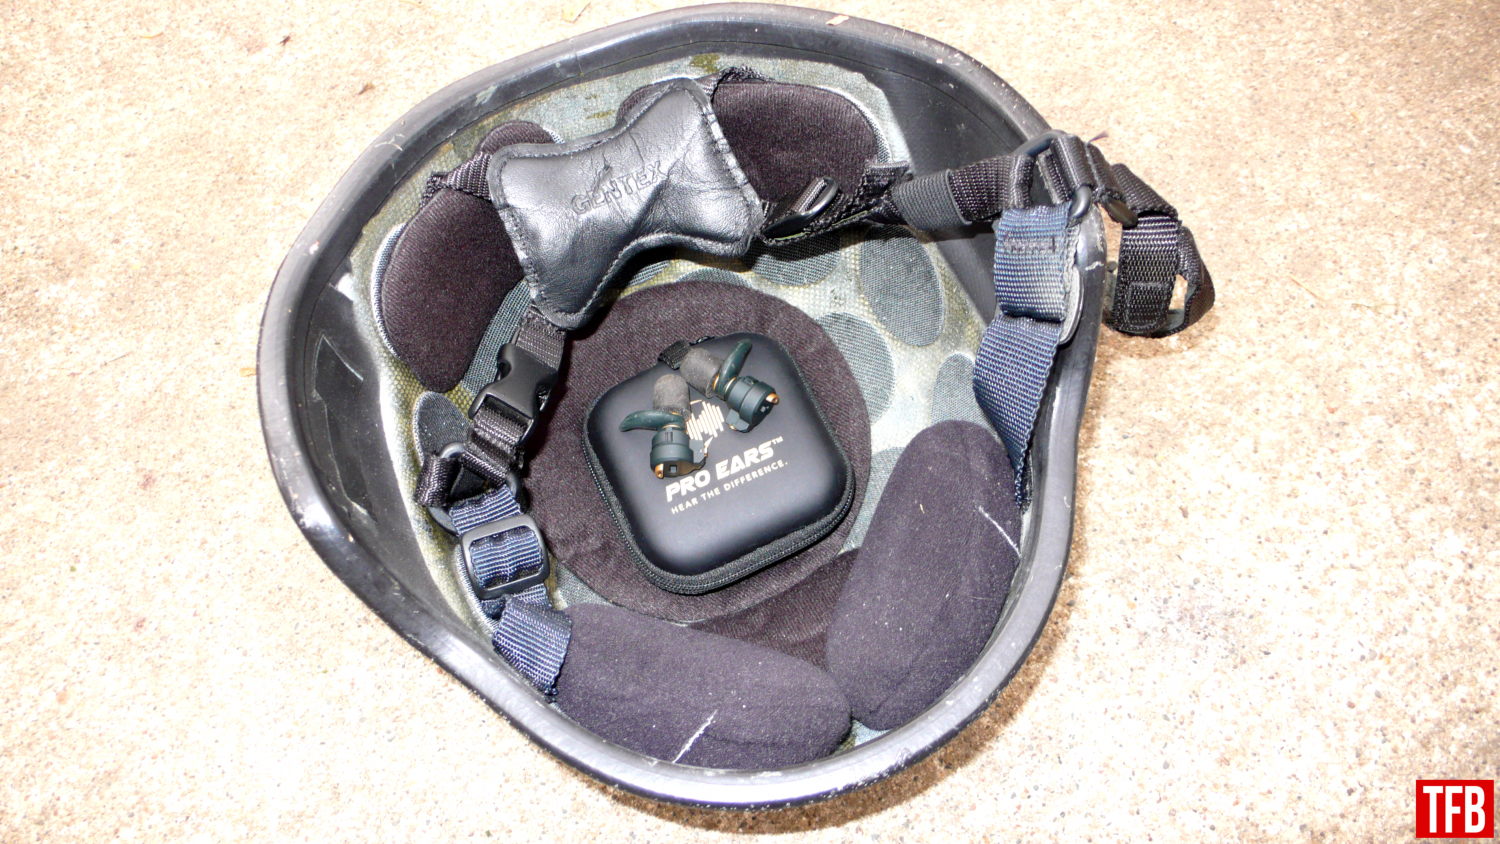 Pro Ears Stealth Elite hearing protection